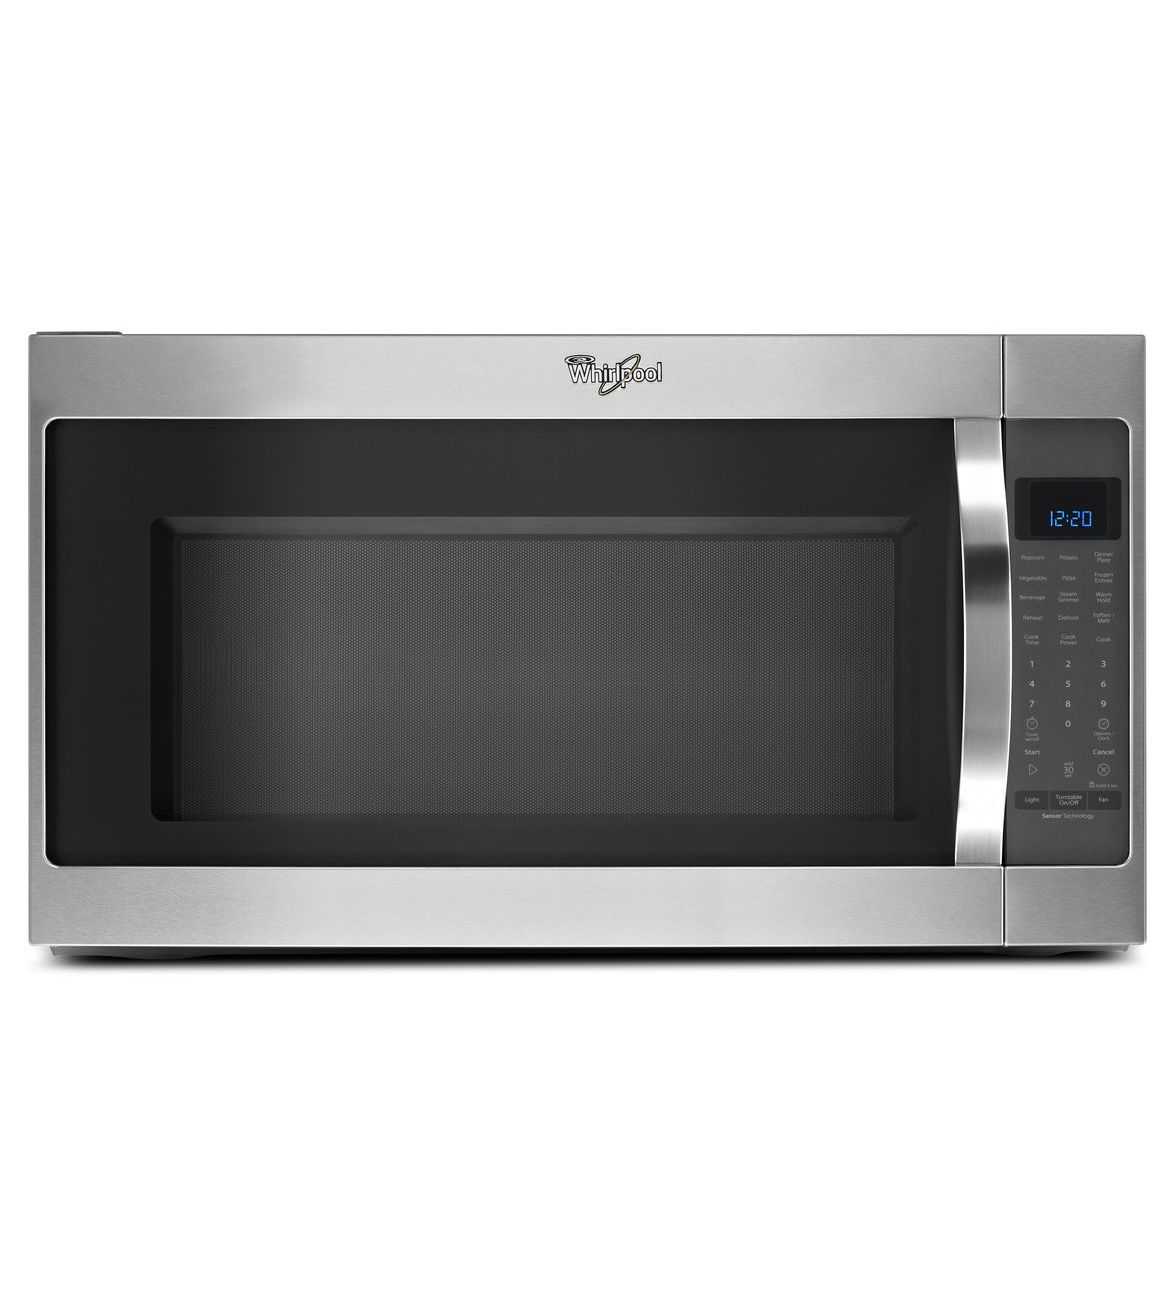 in view larger ft stainless microwaves cu countertop microwave ca whirlpool steel over range the